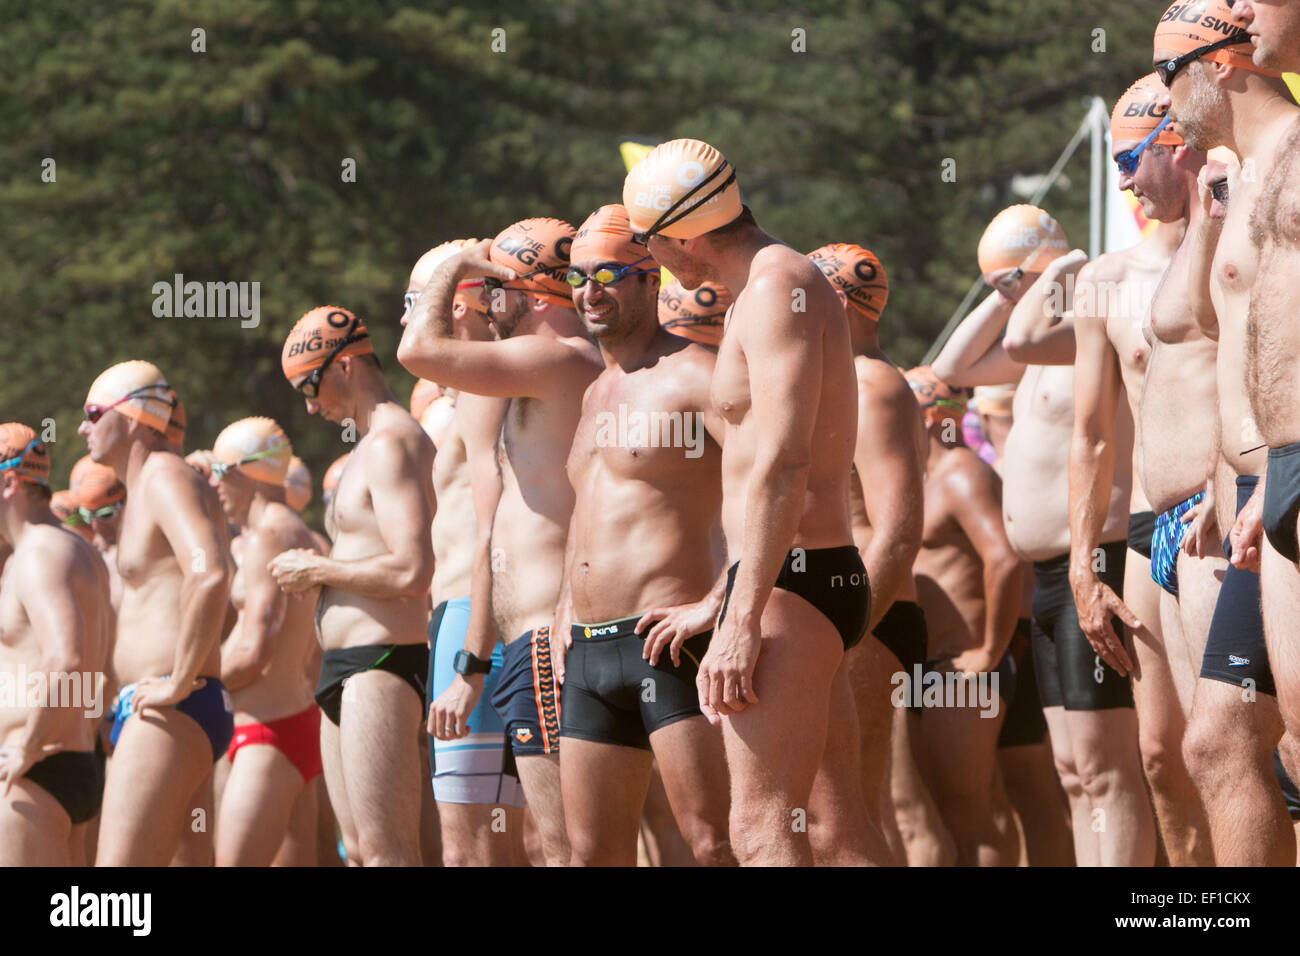 Sydney, Australia. 25th Jan, 2015. This is the 41st Ocean swim race from Palm Beach Pavillion to the centre of Whale - Stock Image